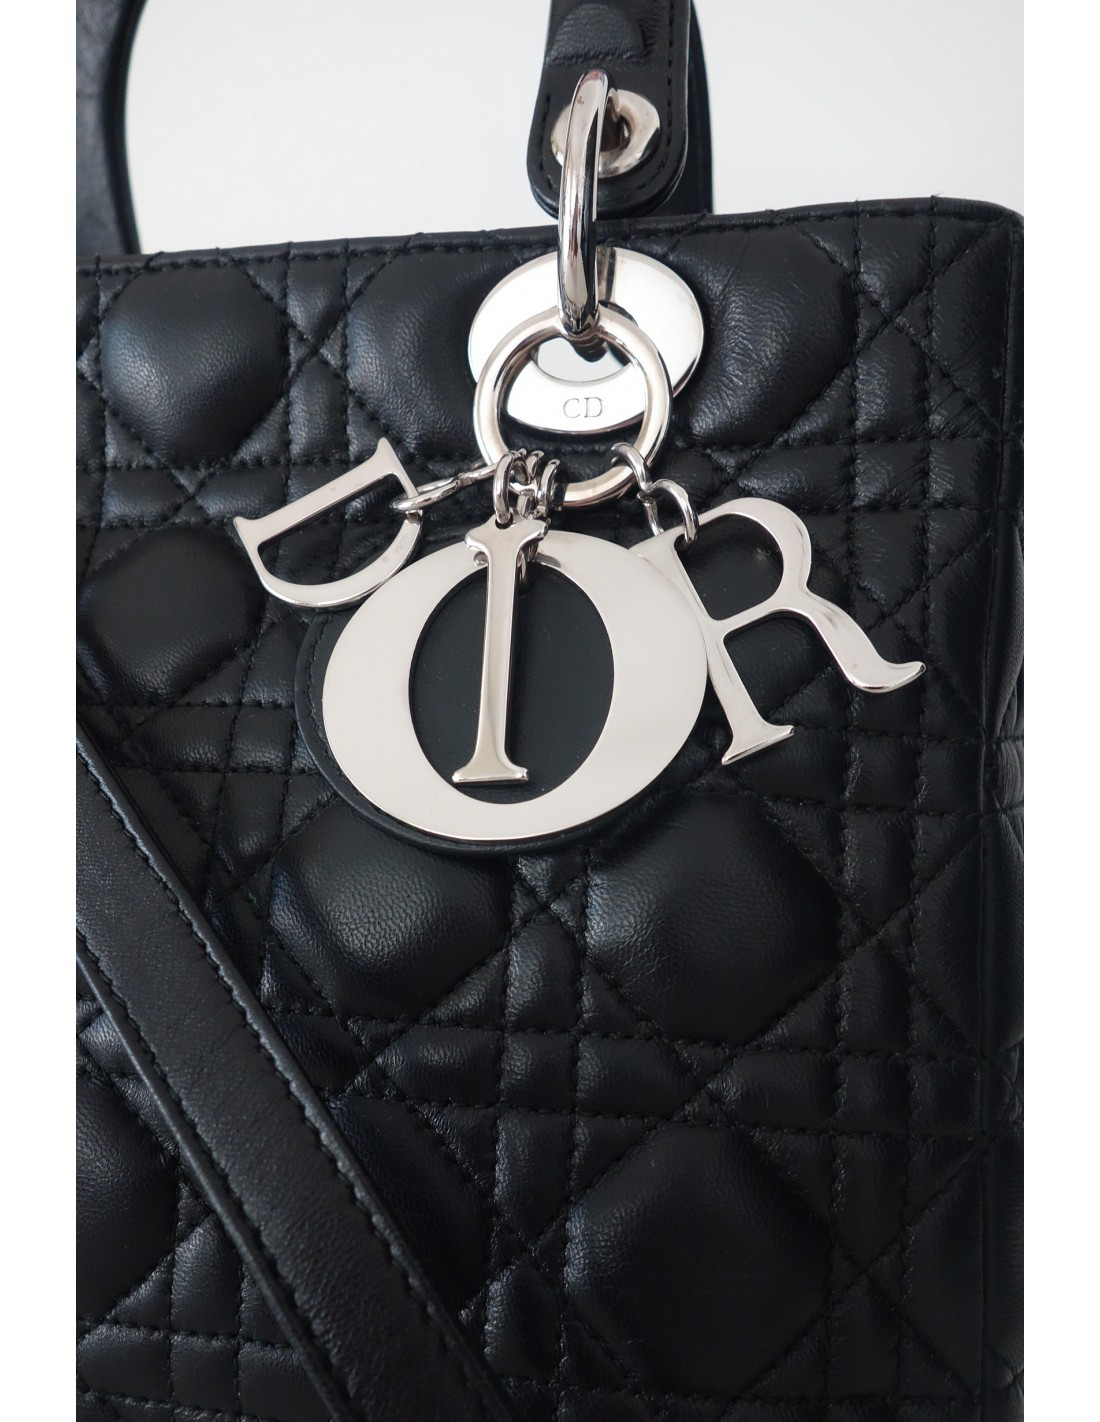 SAC LADY DIOR MEDIUM CUIR NOIR - Atoutluxe Boutique